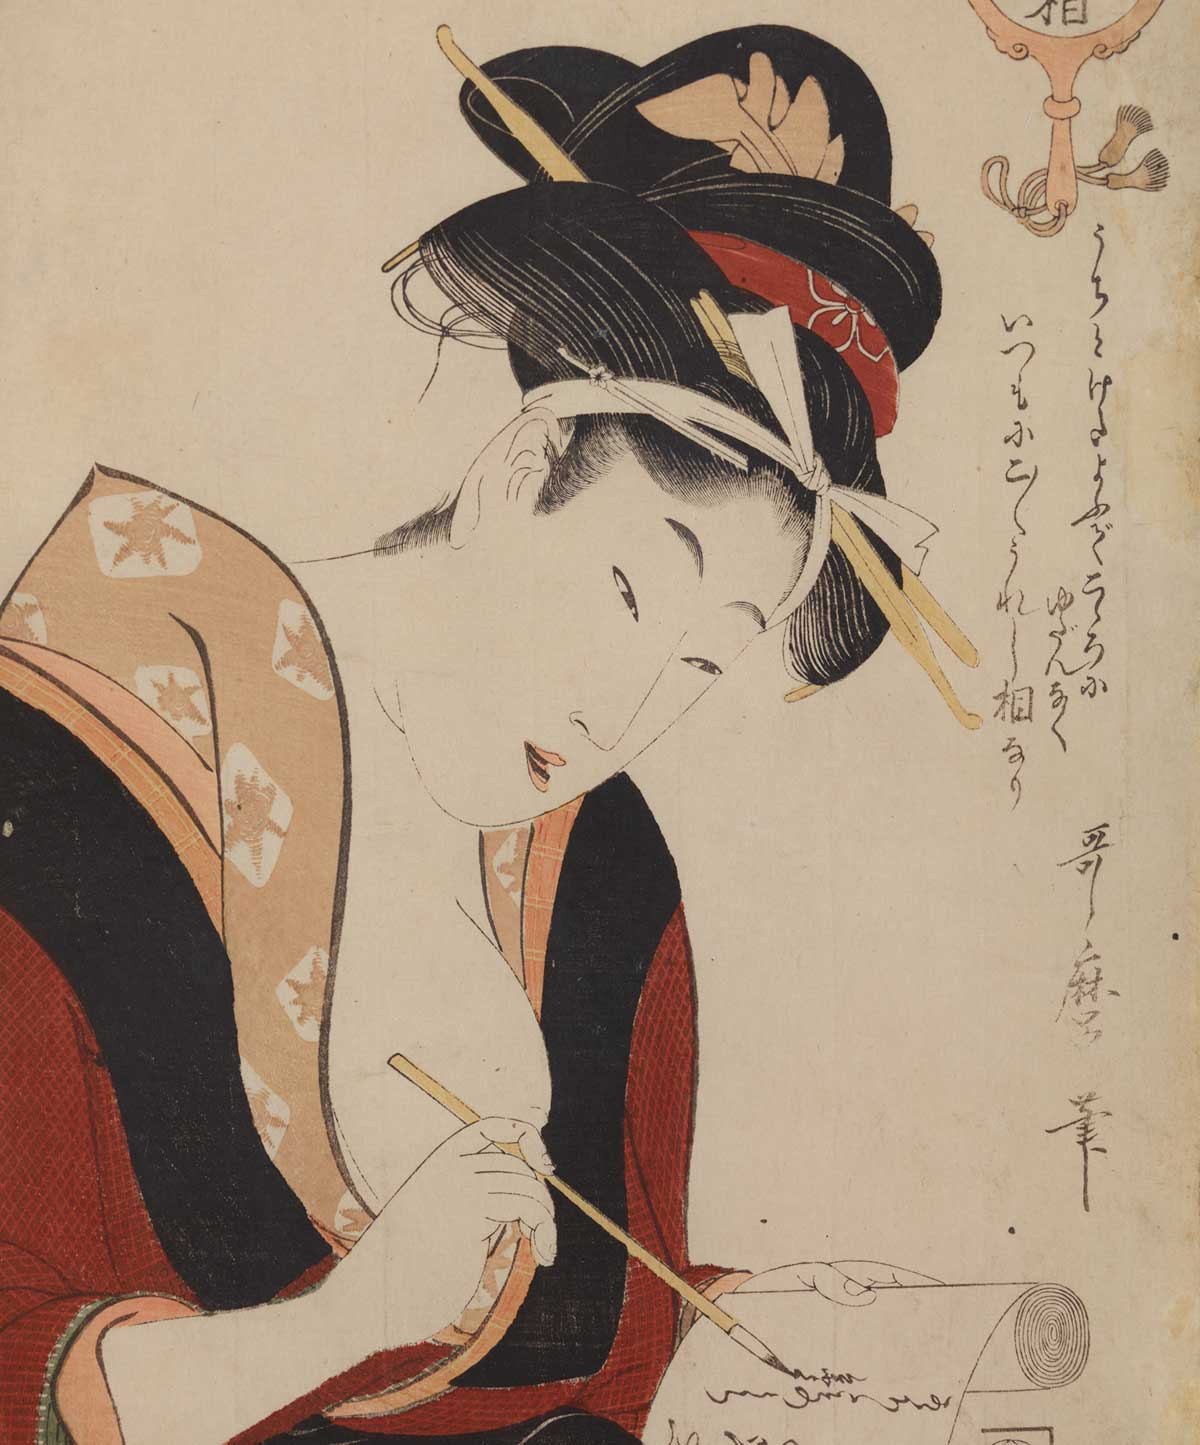 Images of Women in Japanese Painting and Woodblock prints